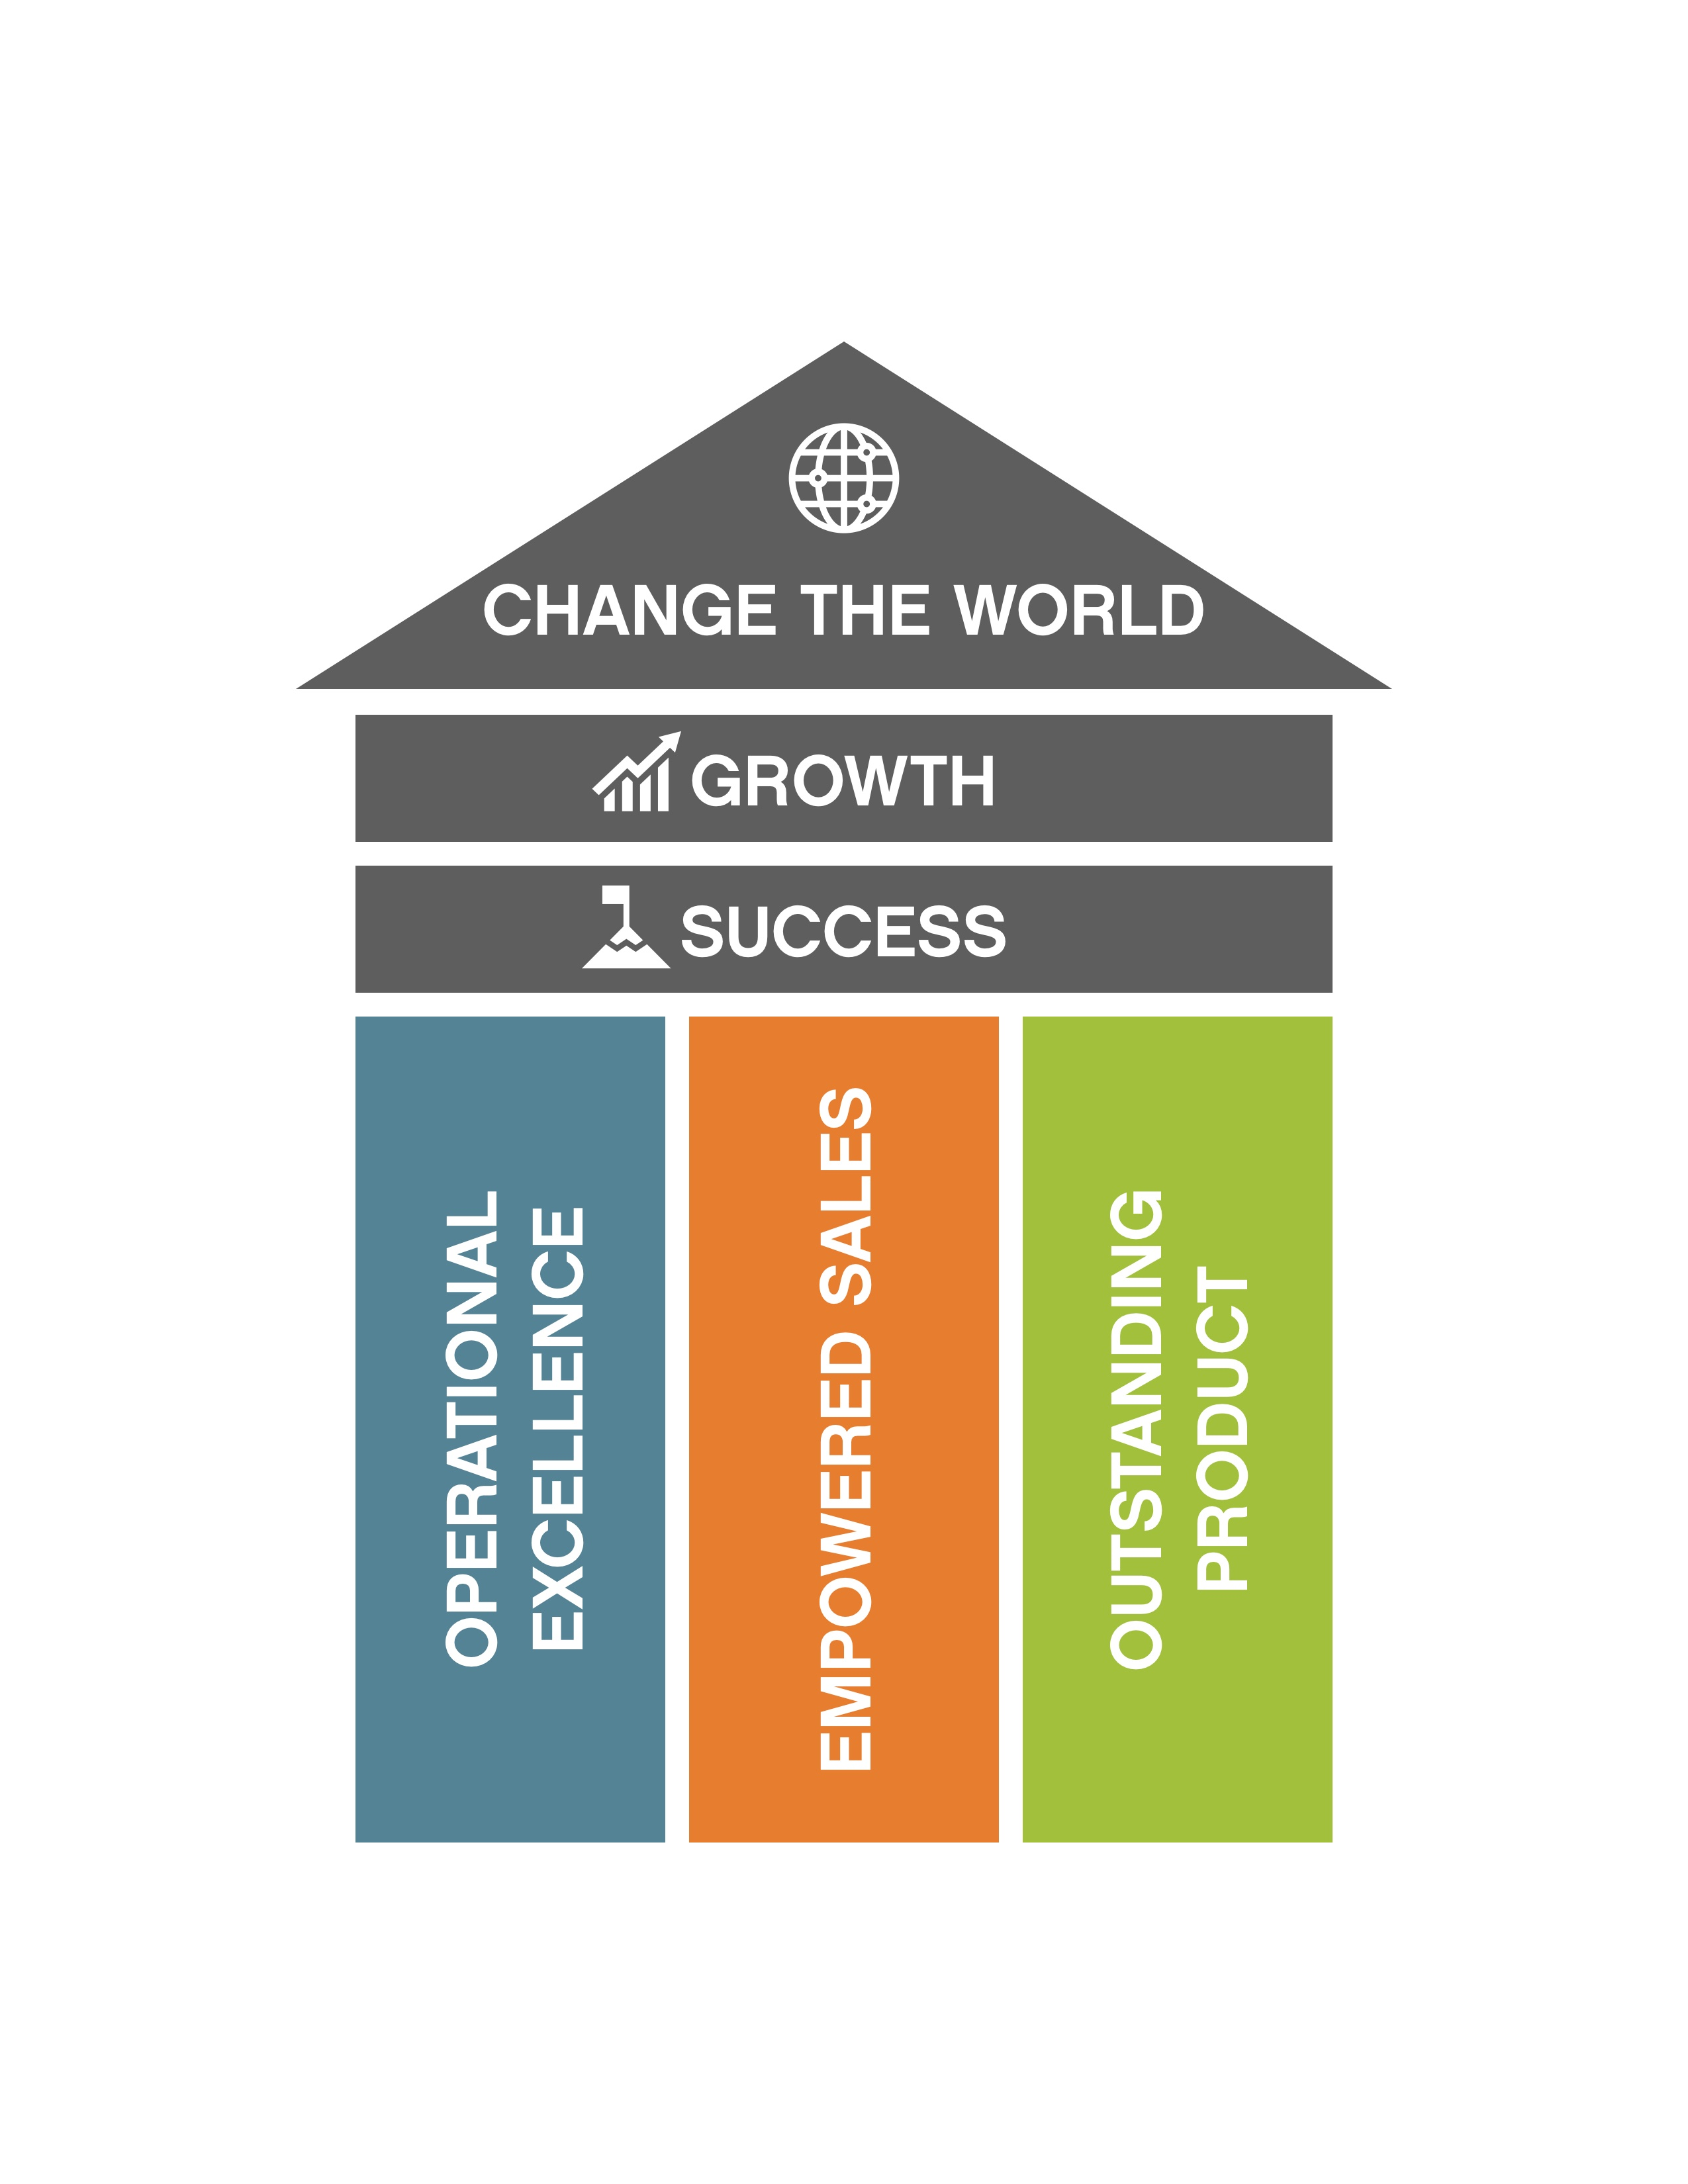 Growth, Success, Change the World